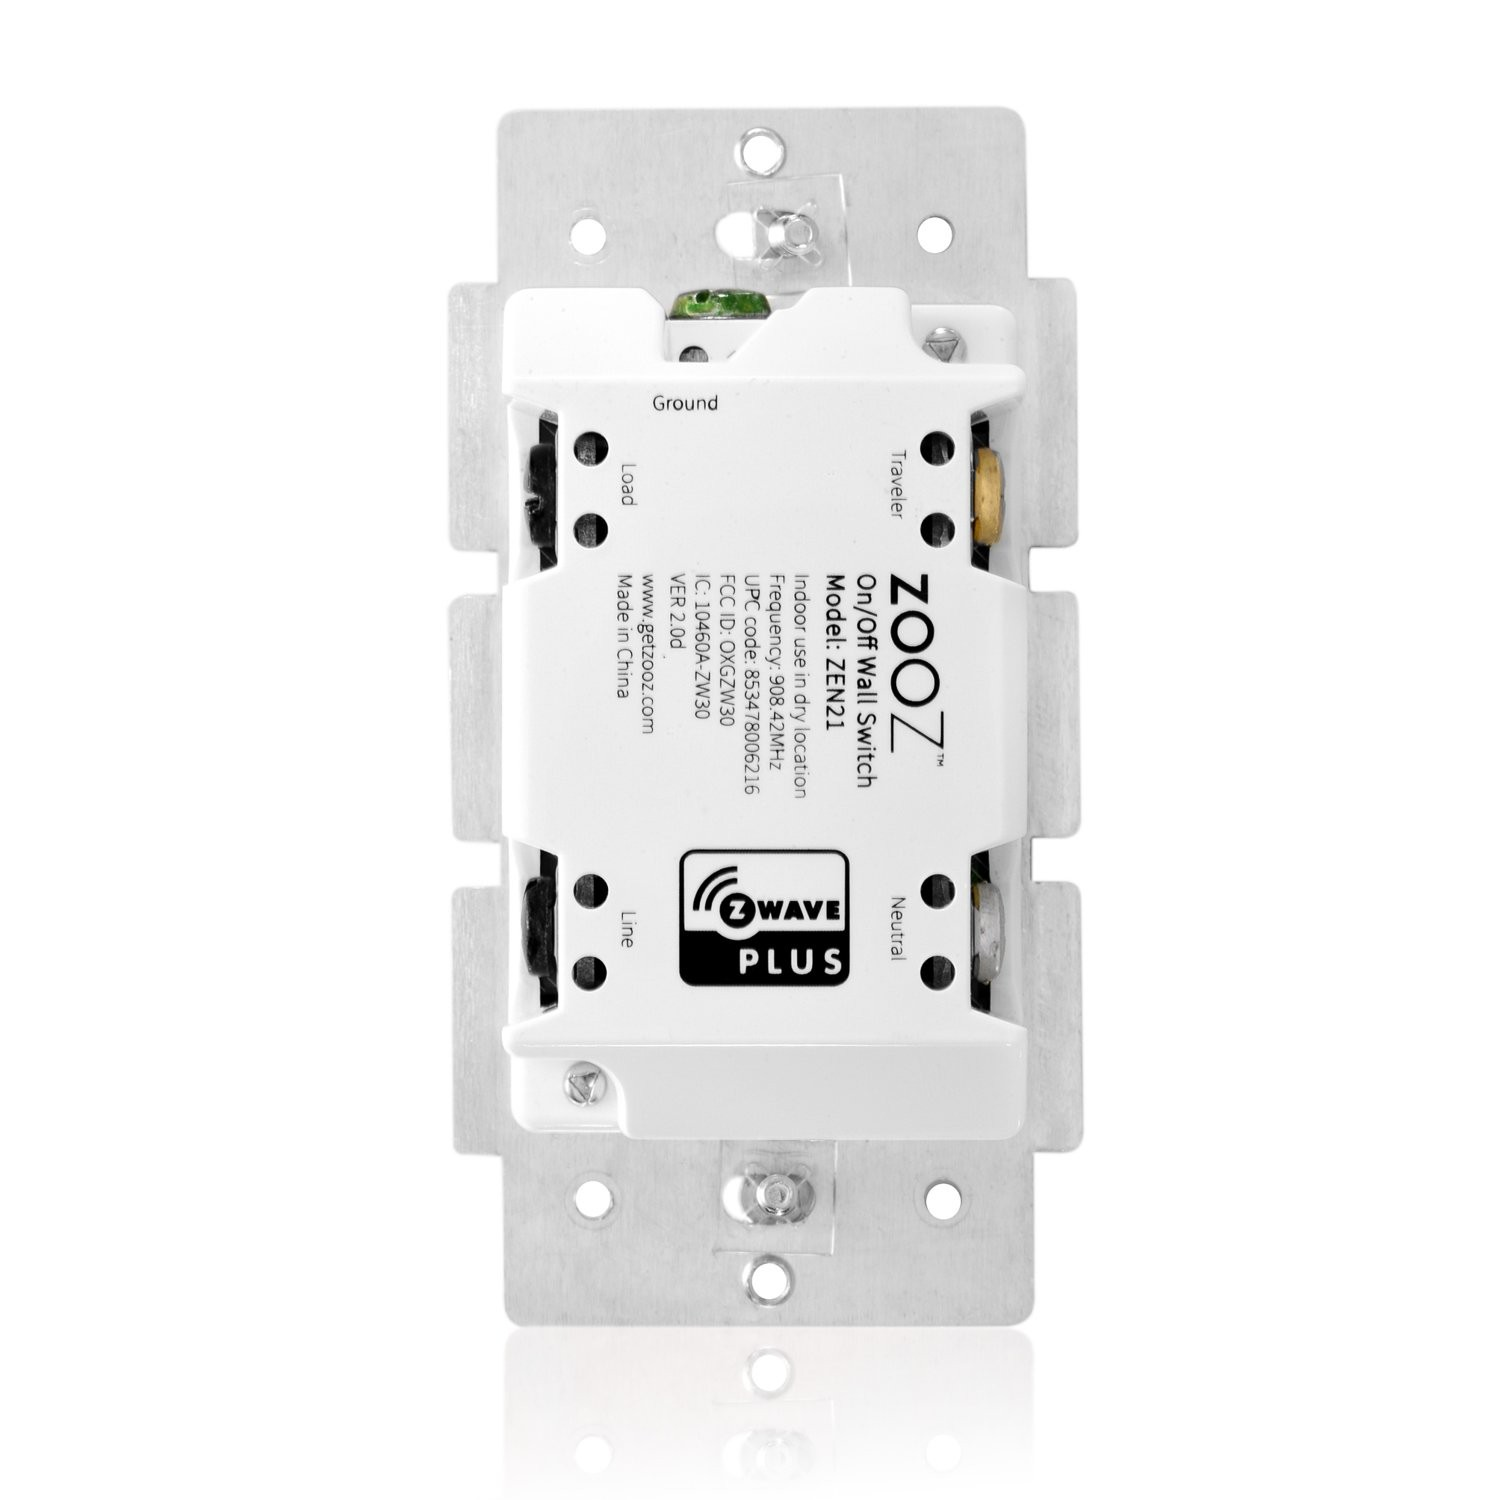 Lighted Rocker Switch Wiring Diagram Zooz Z Wave Plus F Light Switch Zen21 Ver 3 0 the Smartest Of Lighted Rocker Switch Wiring Diagram